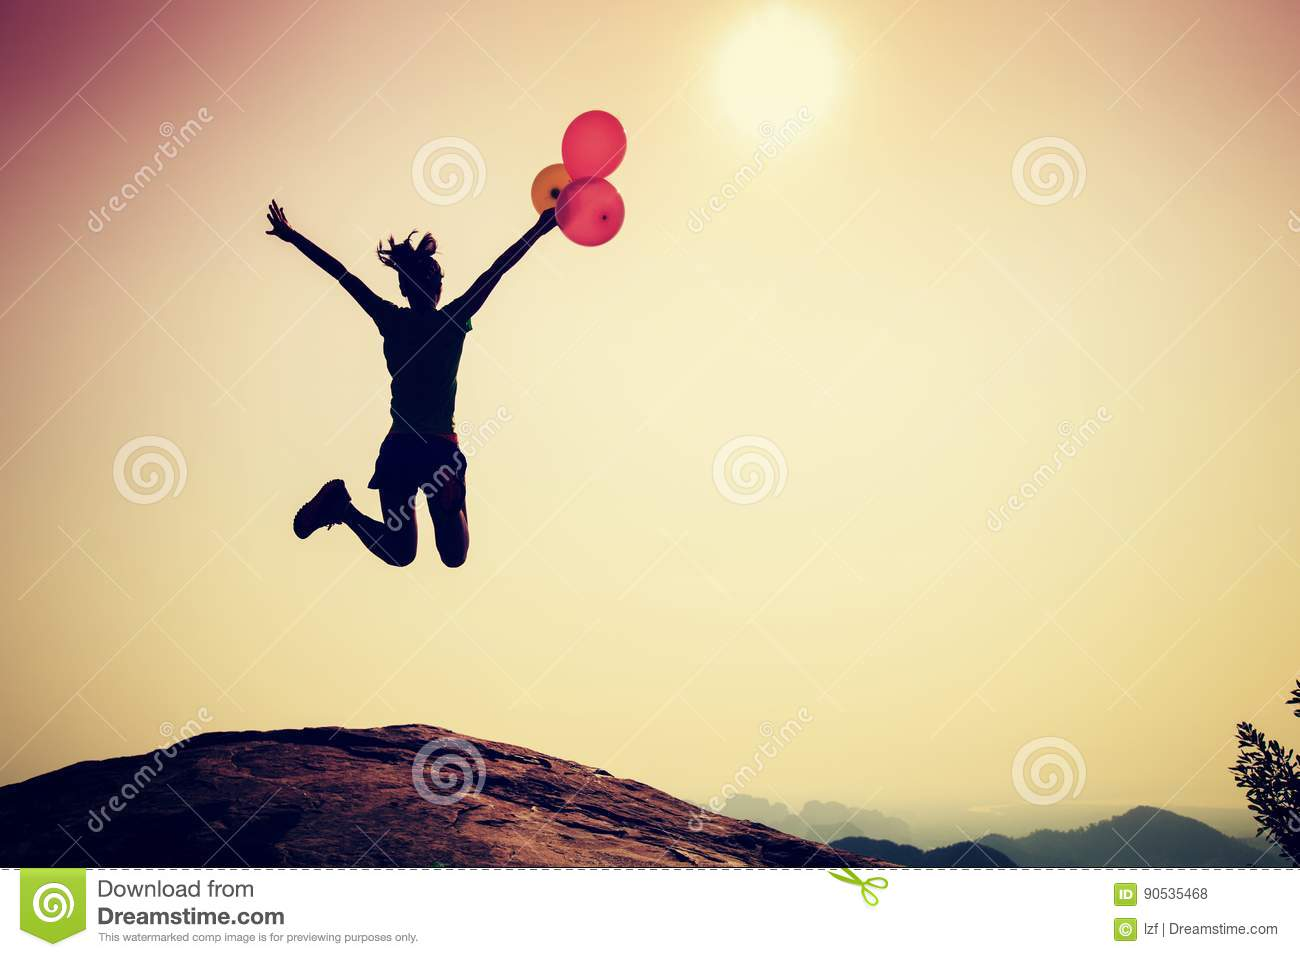 Woman jumping with colorful balloons on sunrise mountain peak